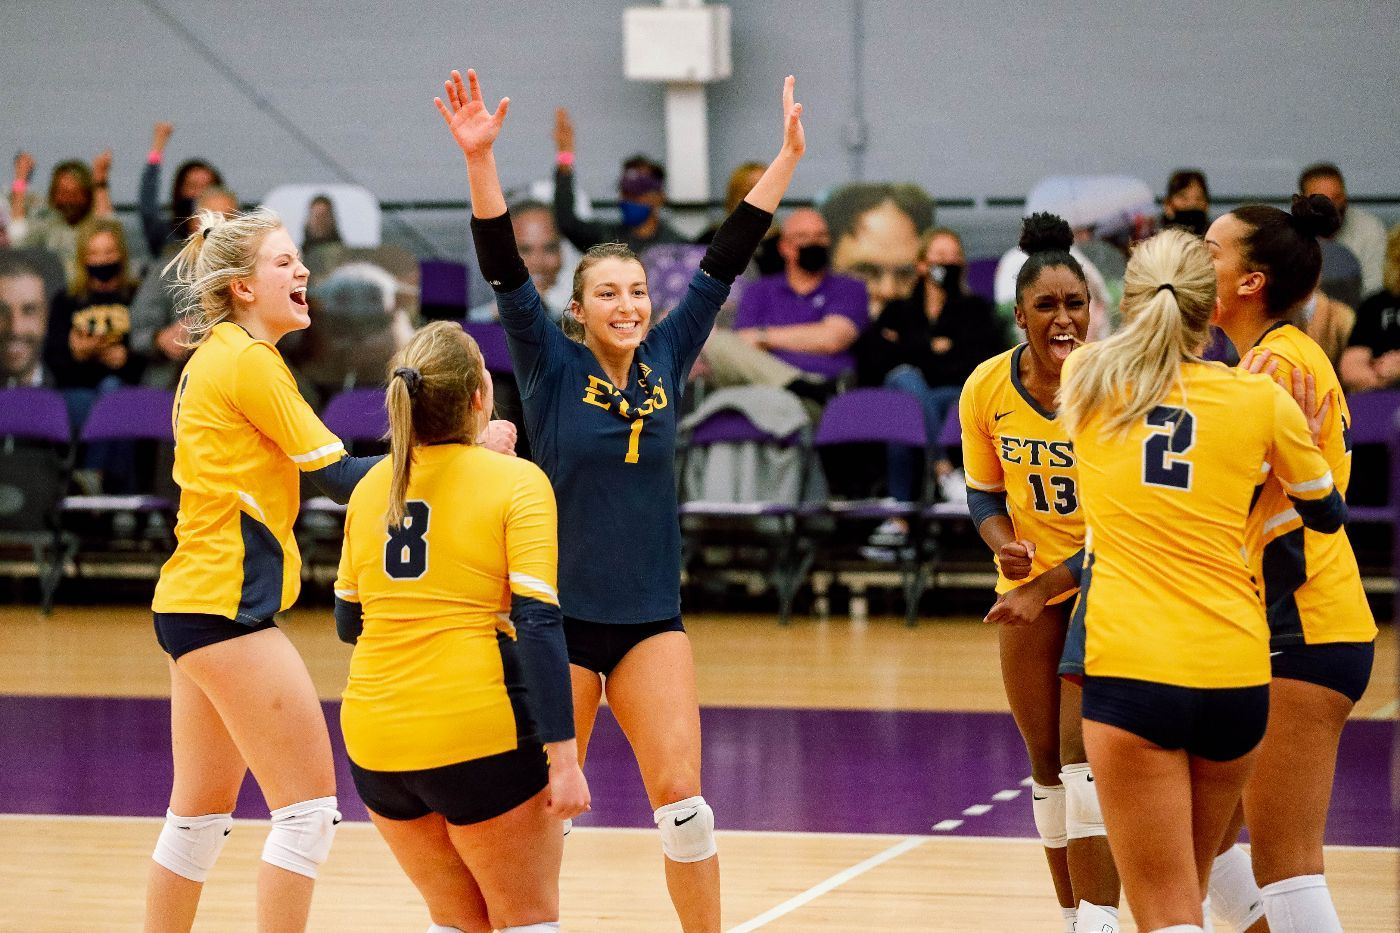 A Win Well Worth the Wait; Bucs Open 2021 with Win Over Paladins